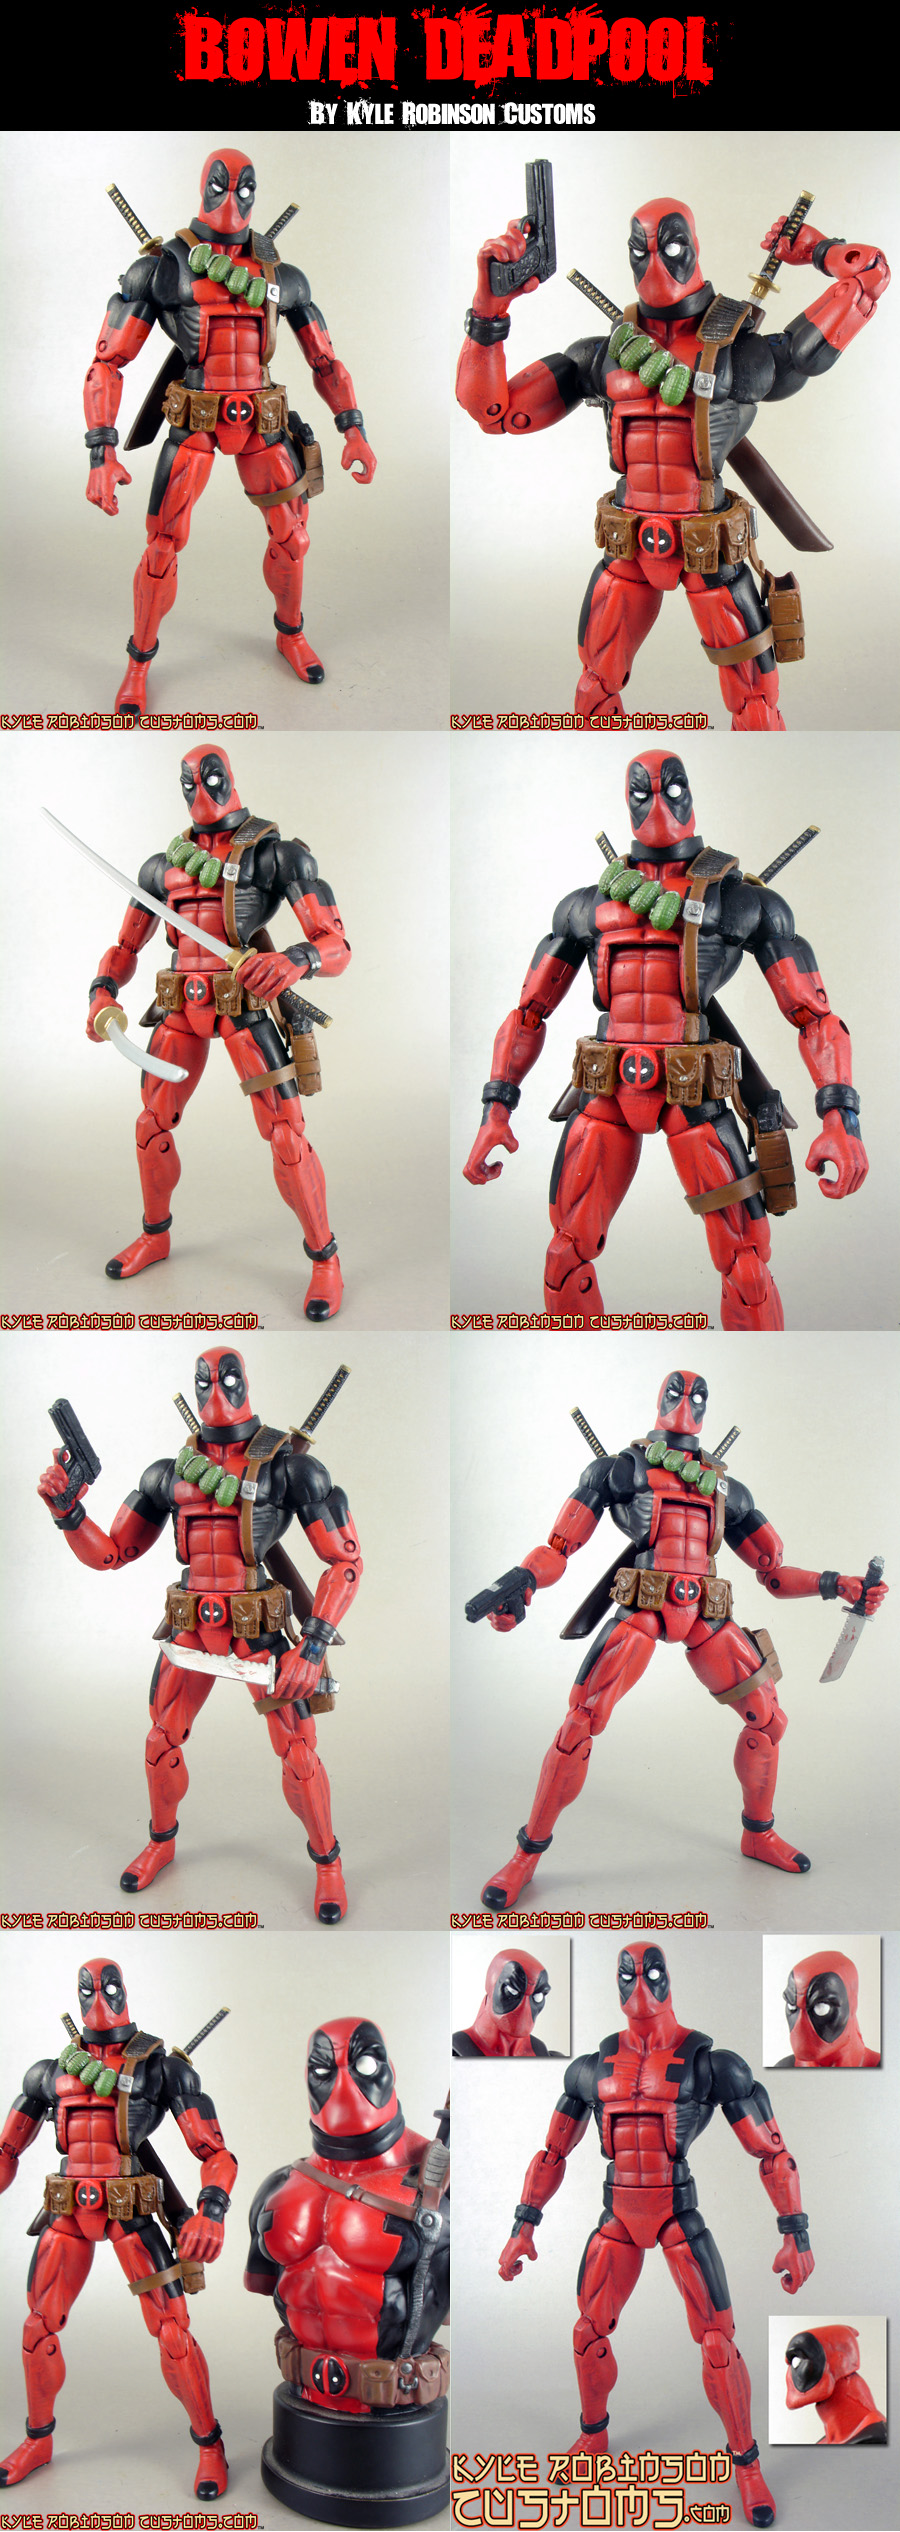 Bowen Deadpool Custom Figure by KyleRobinsonCustoms